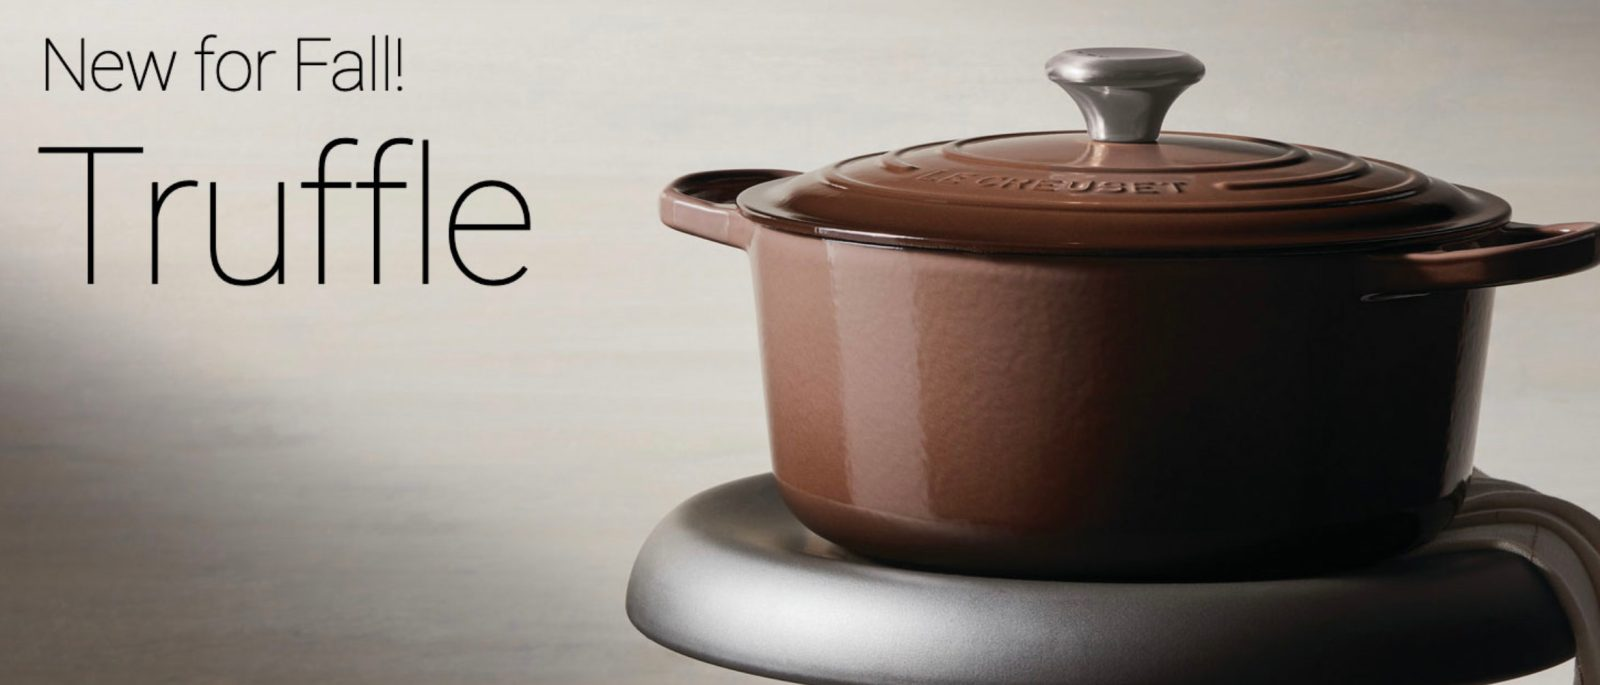 Le Creuset's new Truffle collection gets you ready for cool weather cooking